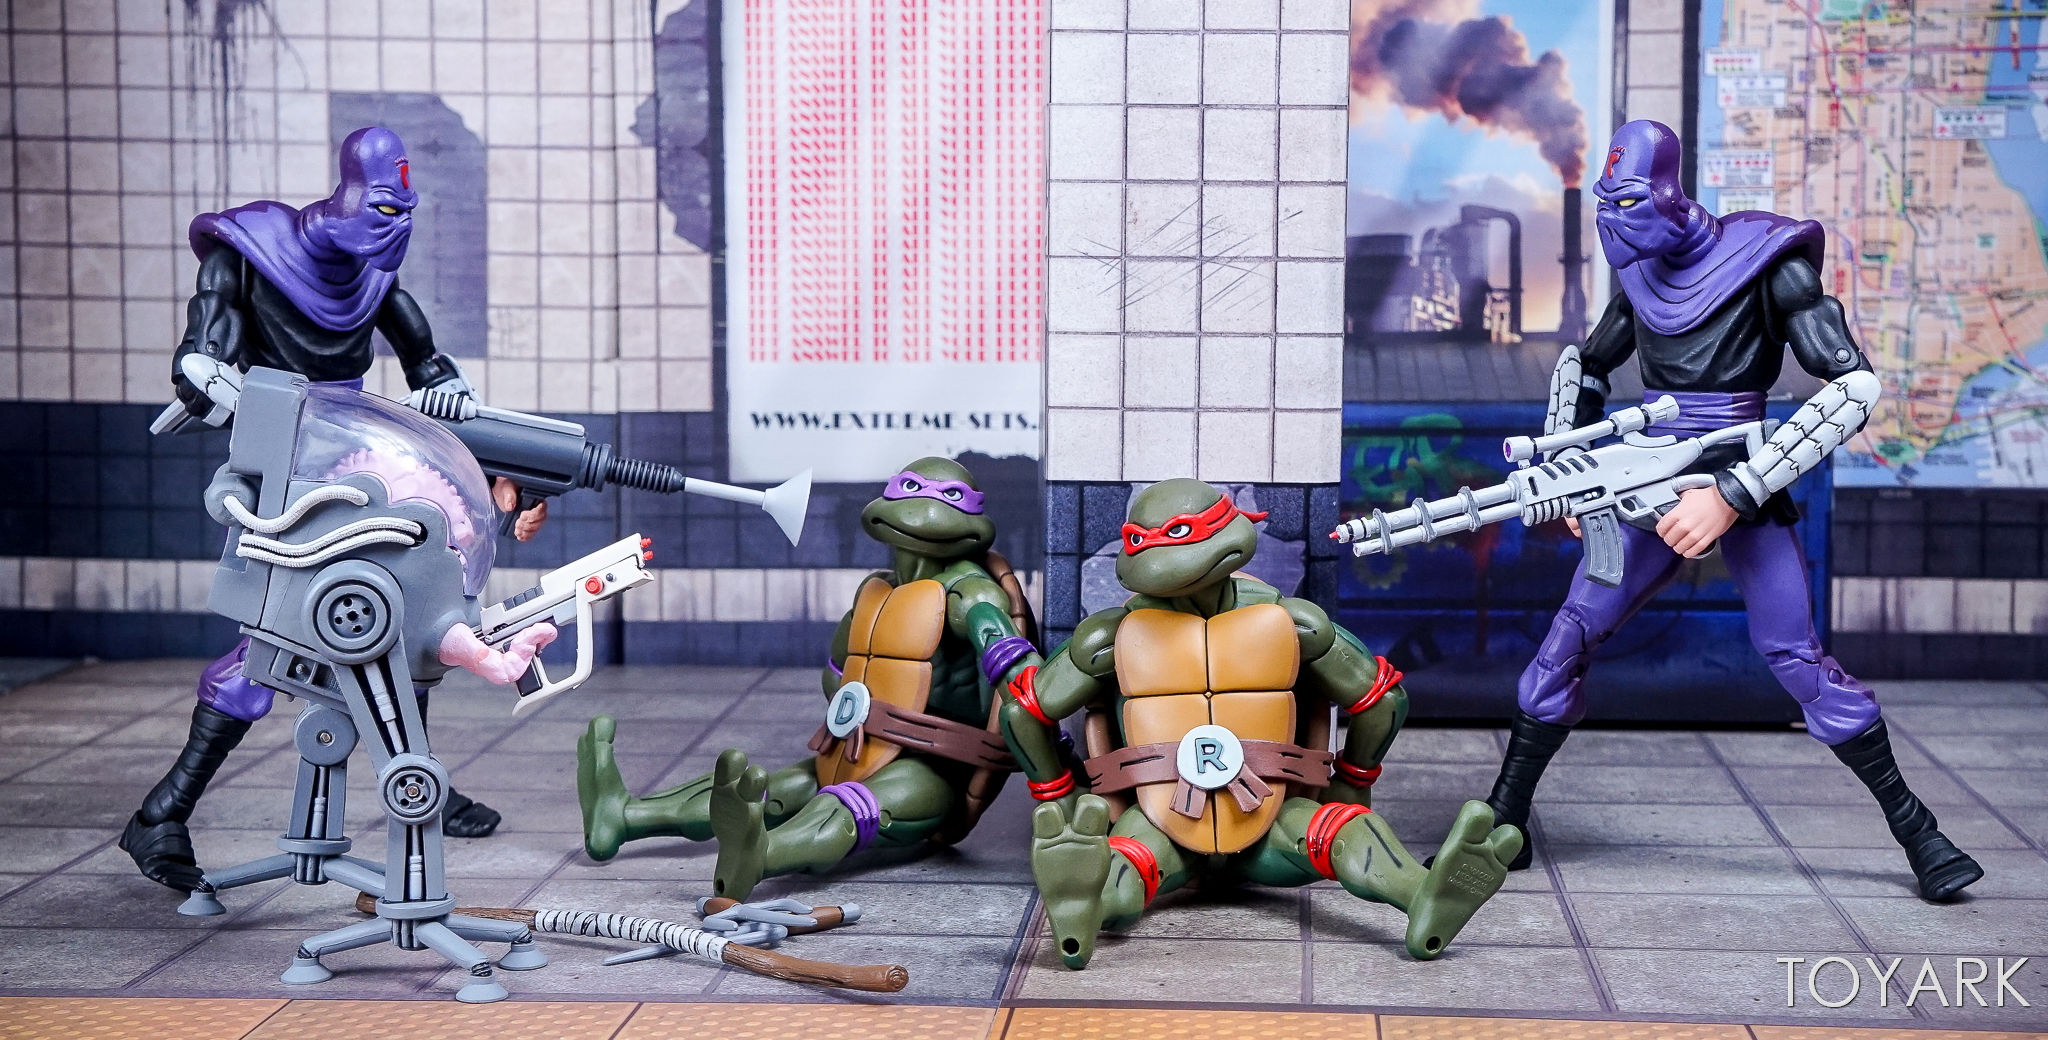 http://news.toyark.com/wp-content/uploads/sites/4/2017/07/NECA-SDCC-2017-Toon-TMNT-080.jpg